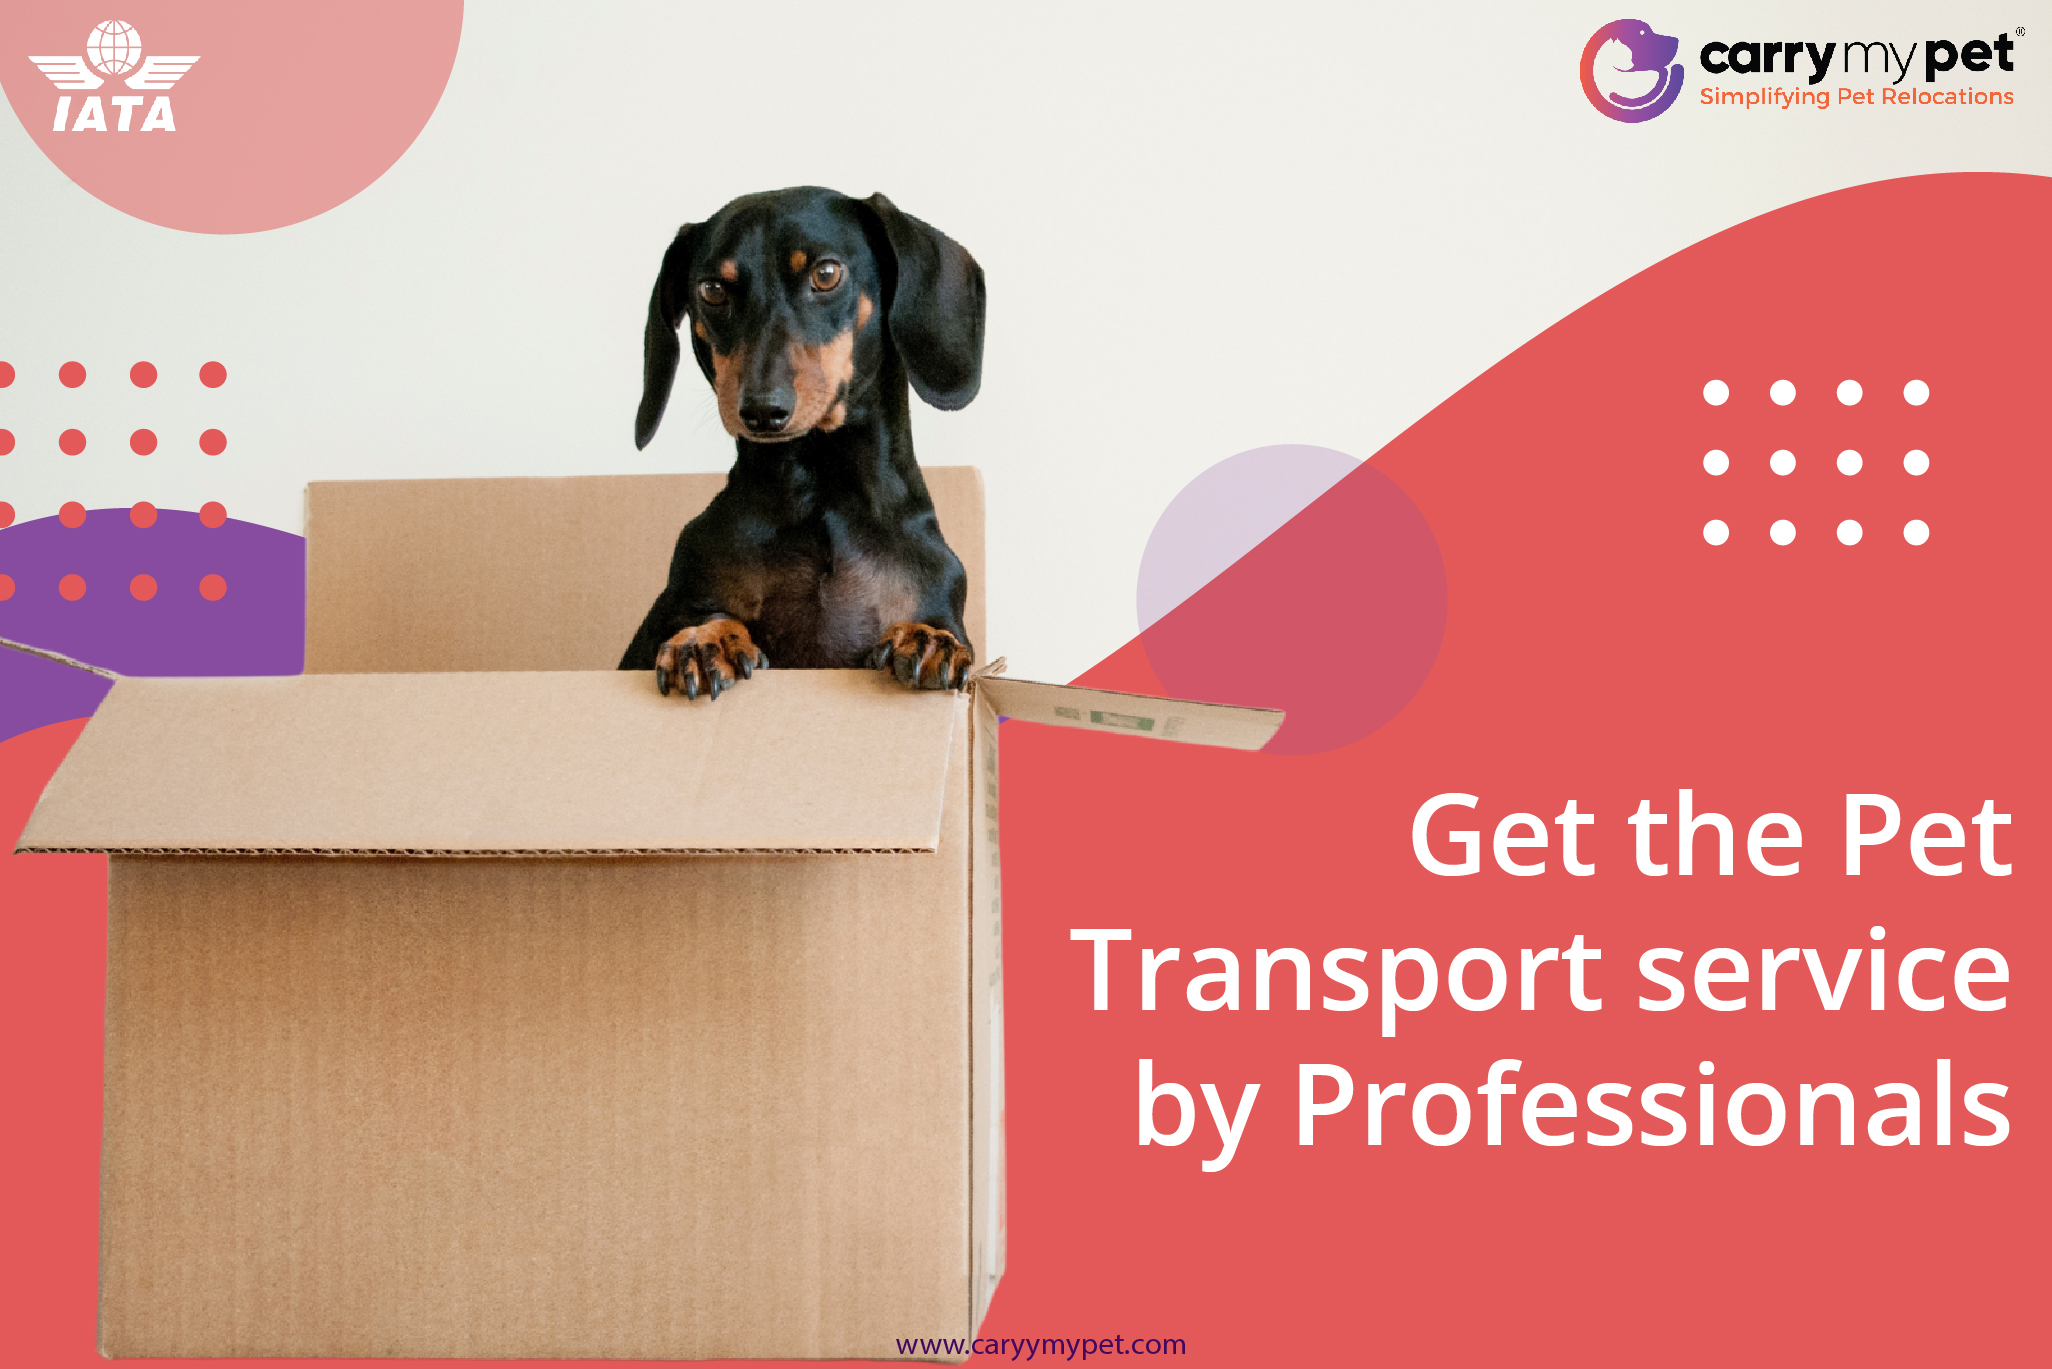 Get the pet trasport service by professionals-01-01